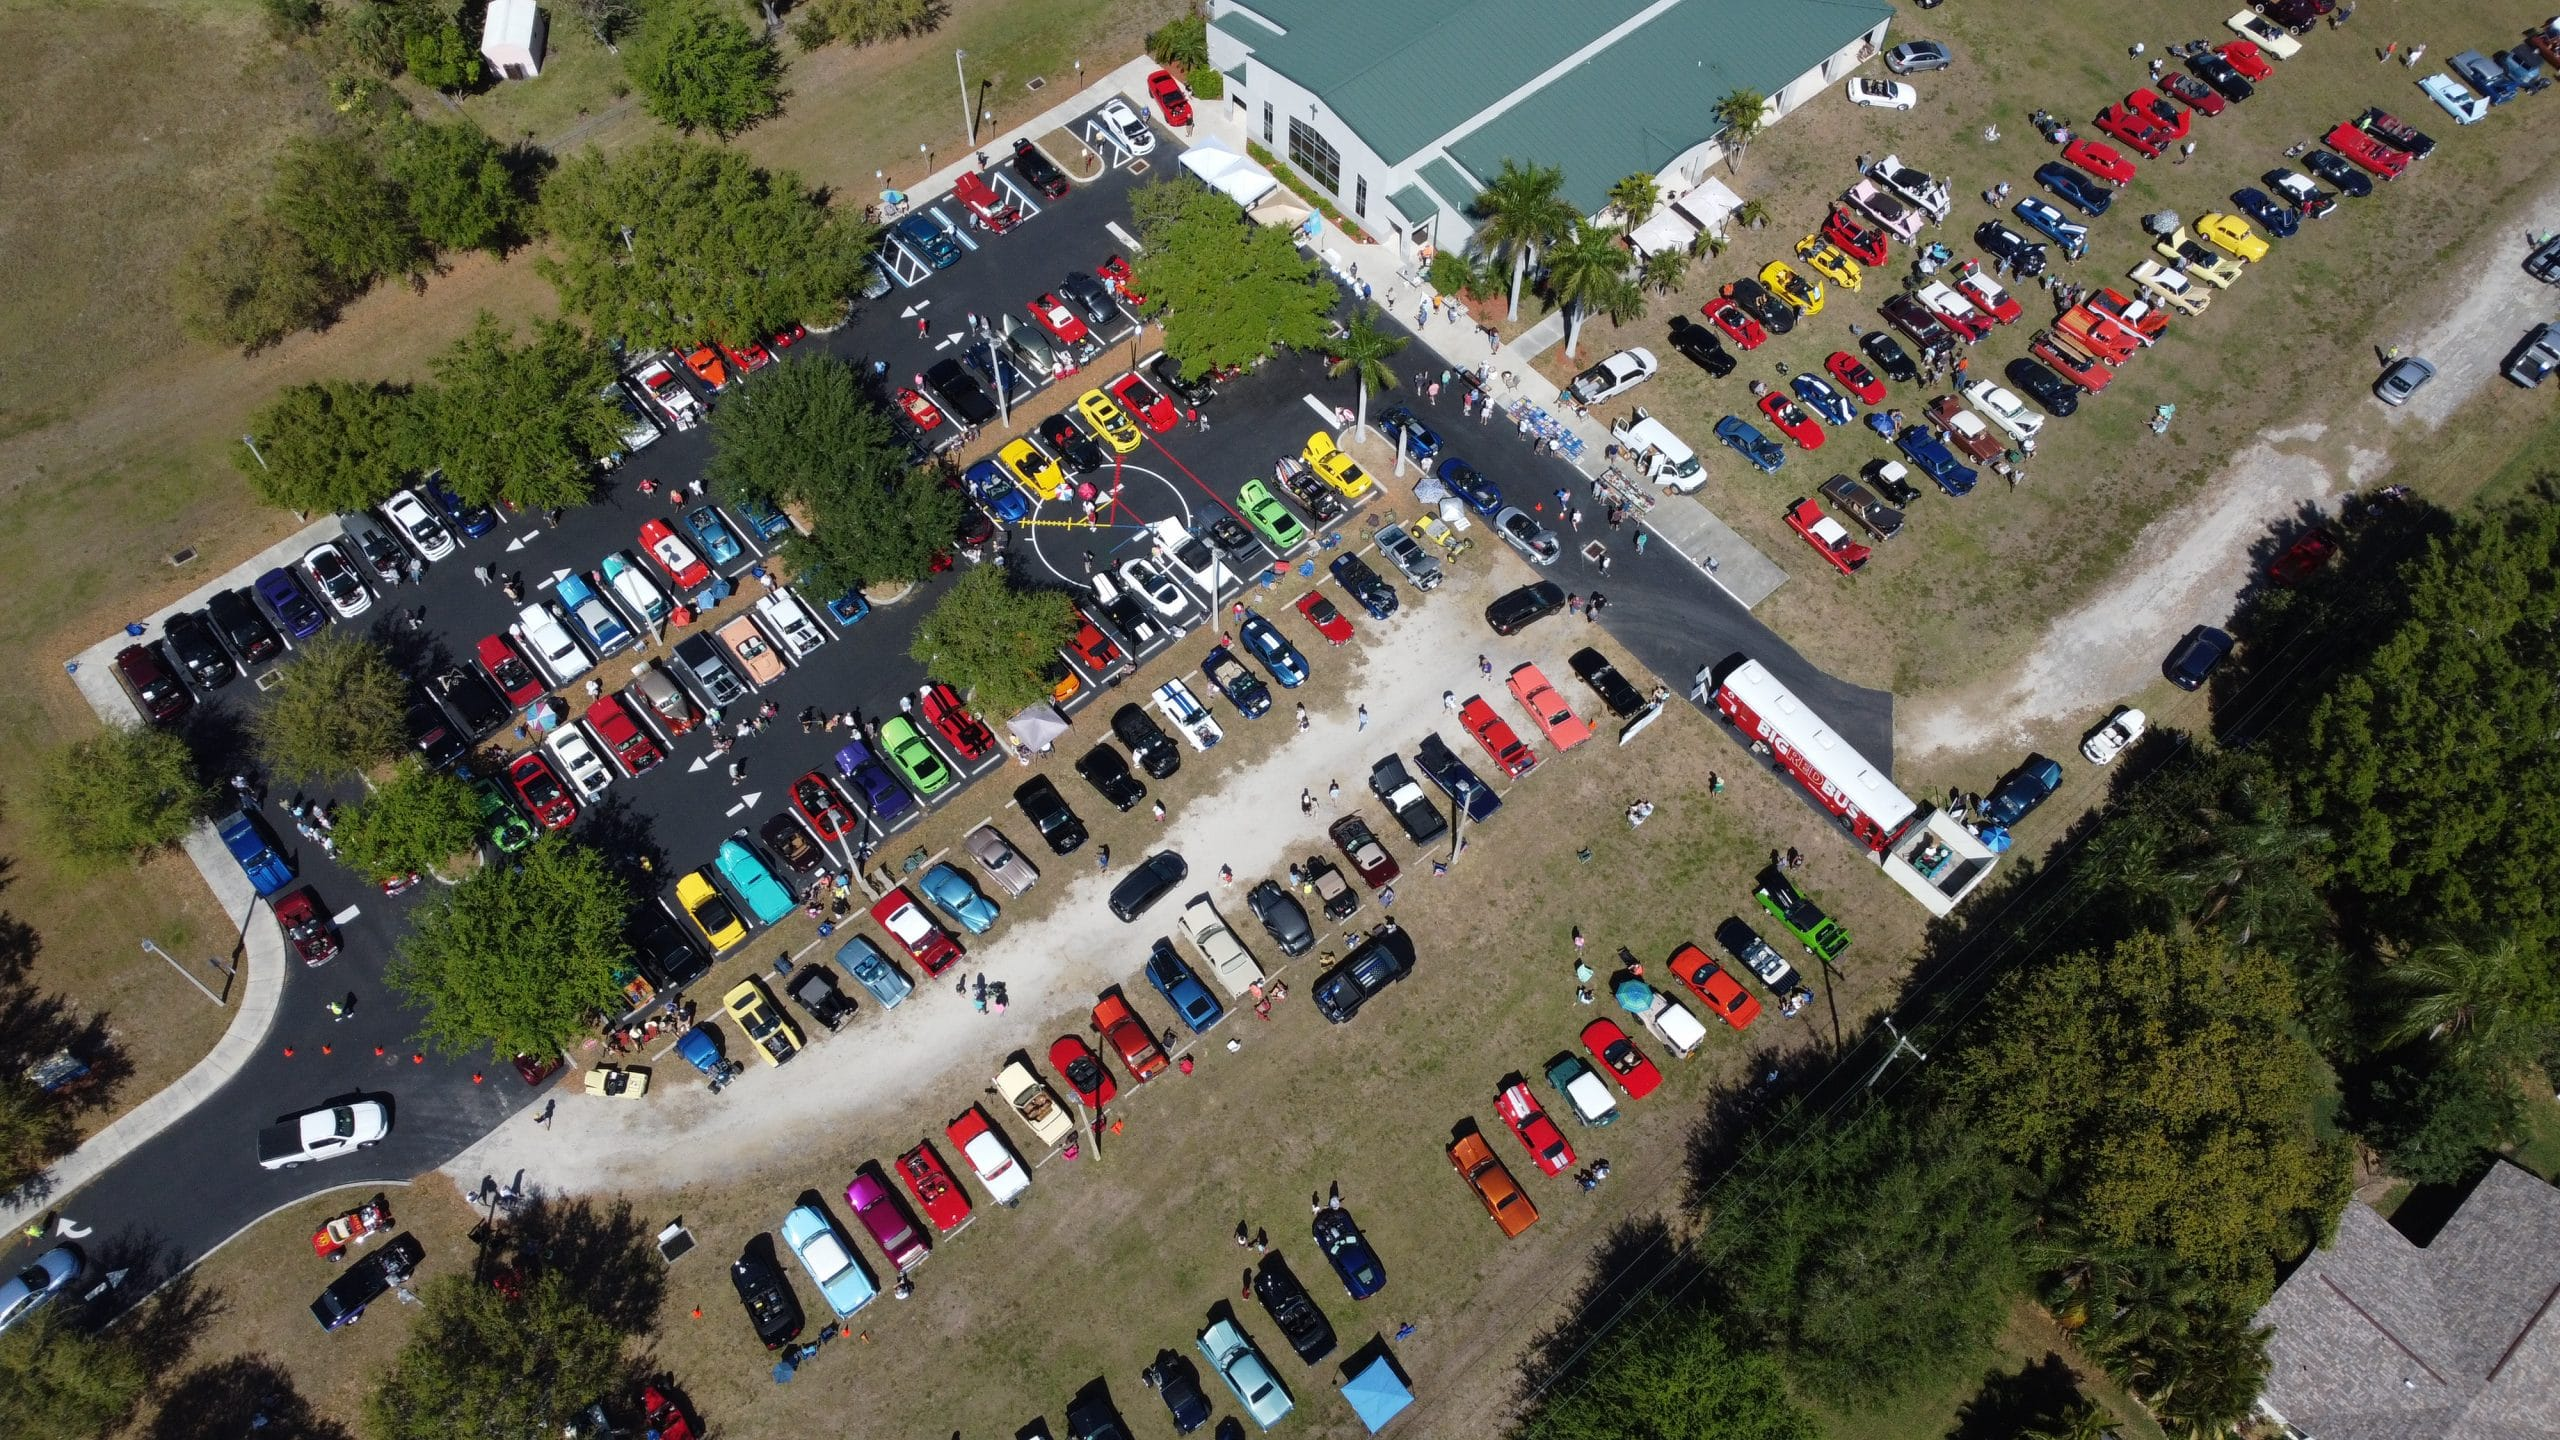 Arial view of the New Hope Church Car Show